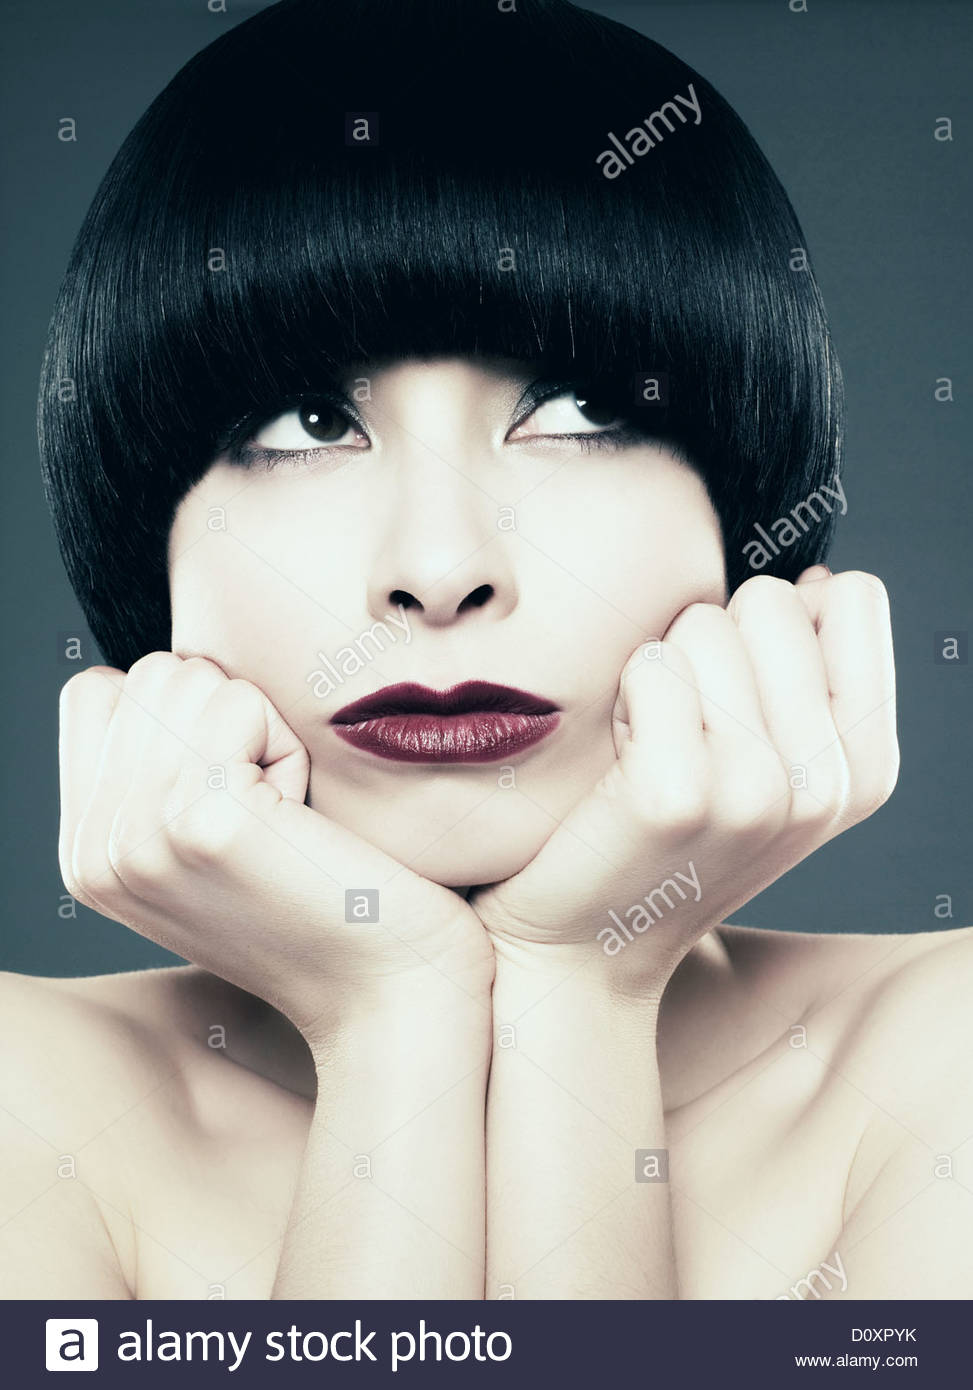 Young woman with black bob land hands on chin - Stock Image